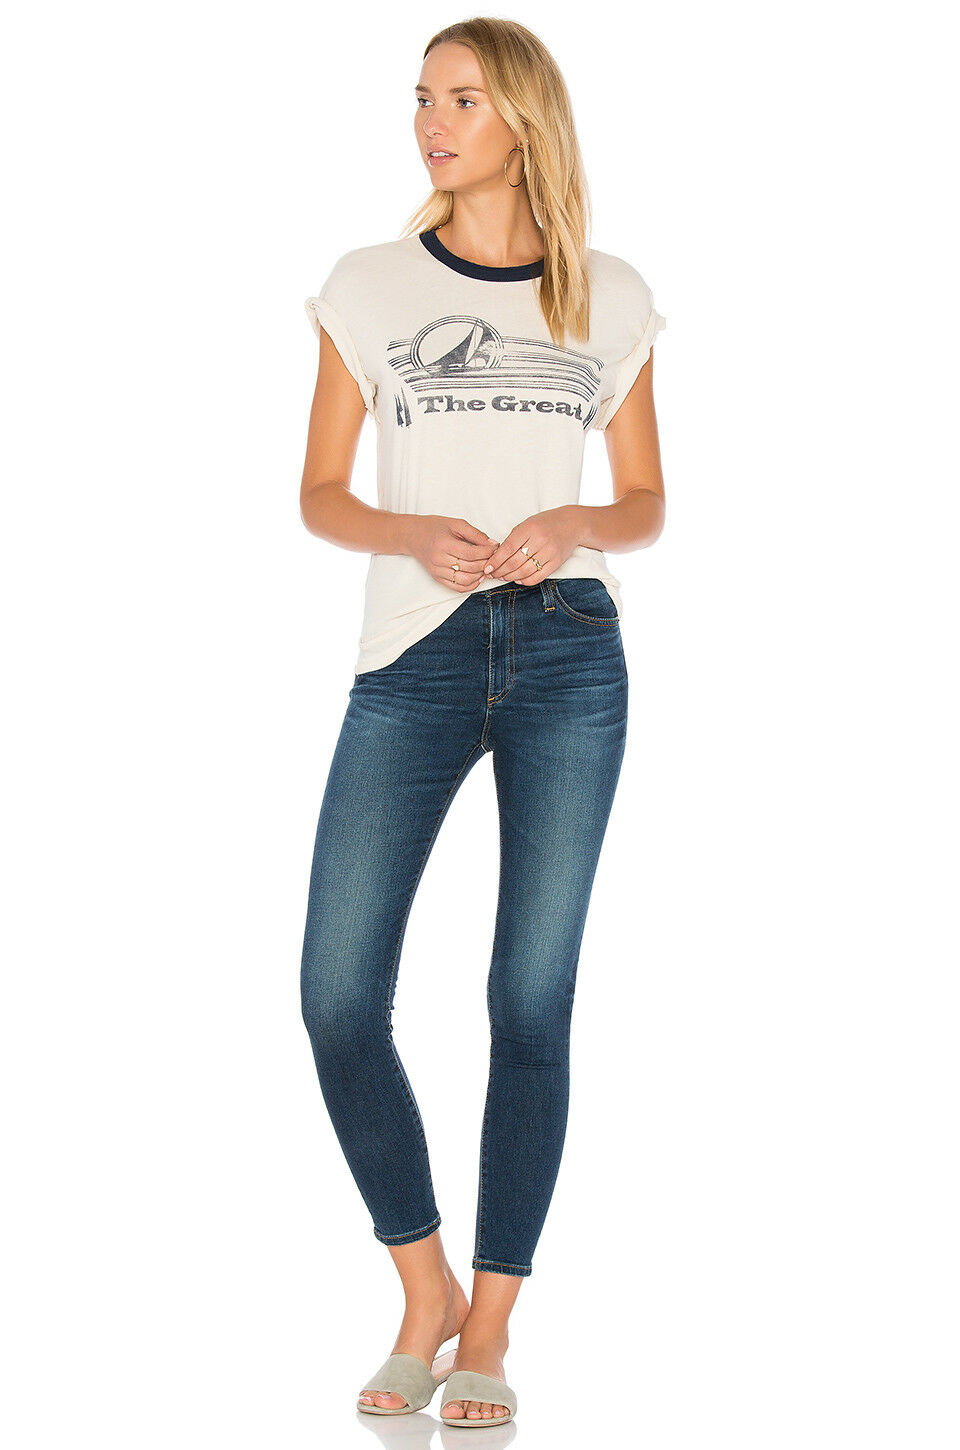 AG goldschmied Farrah Ankle High-rise Skinny Crop Jeans - 4 years rapids - 32